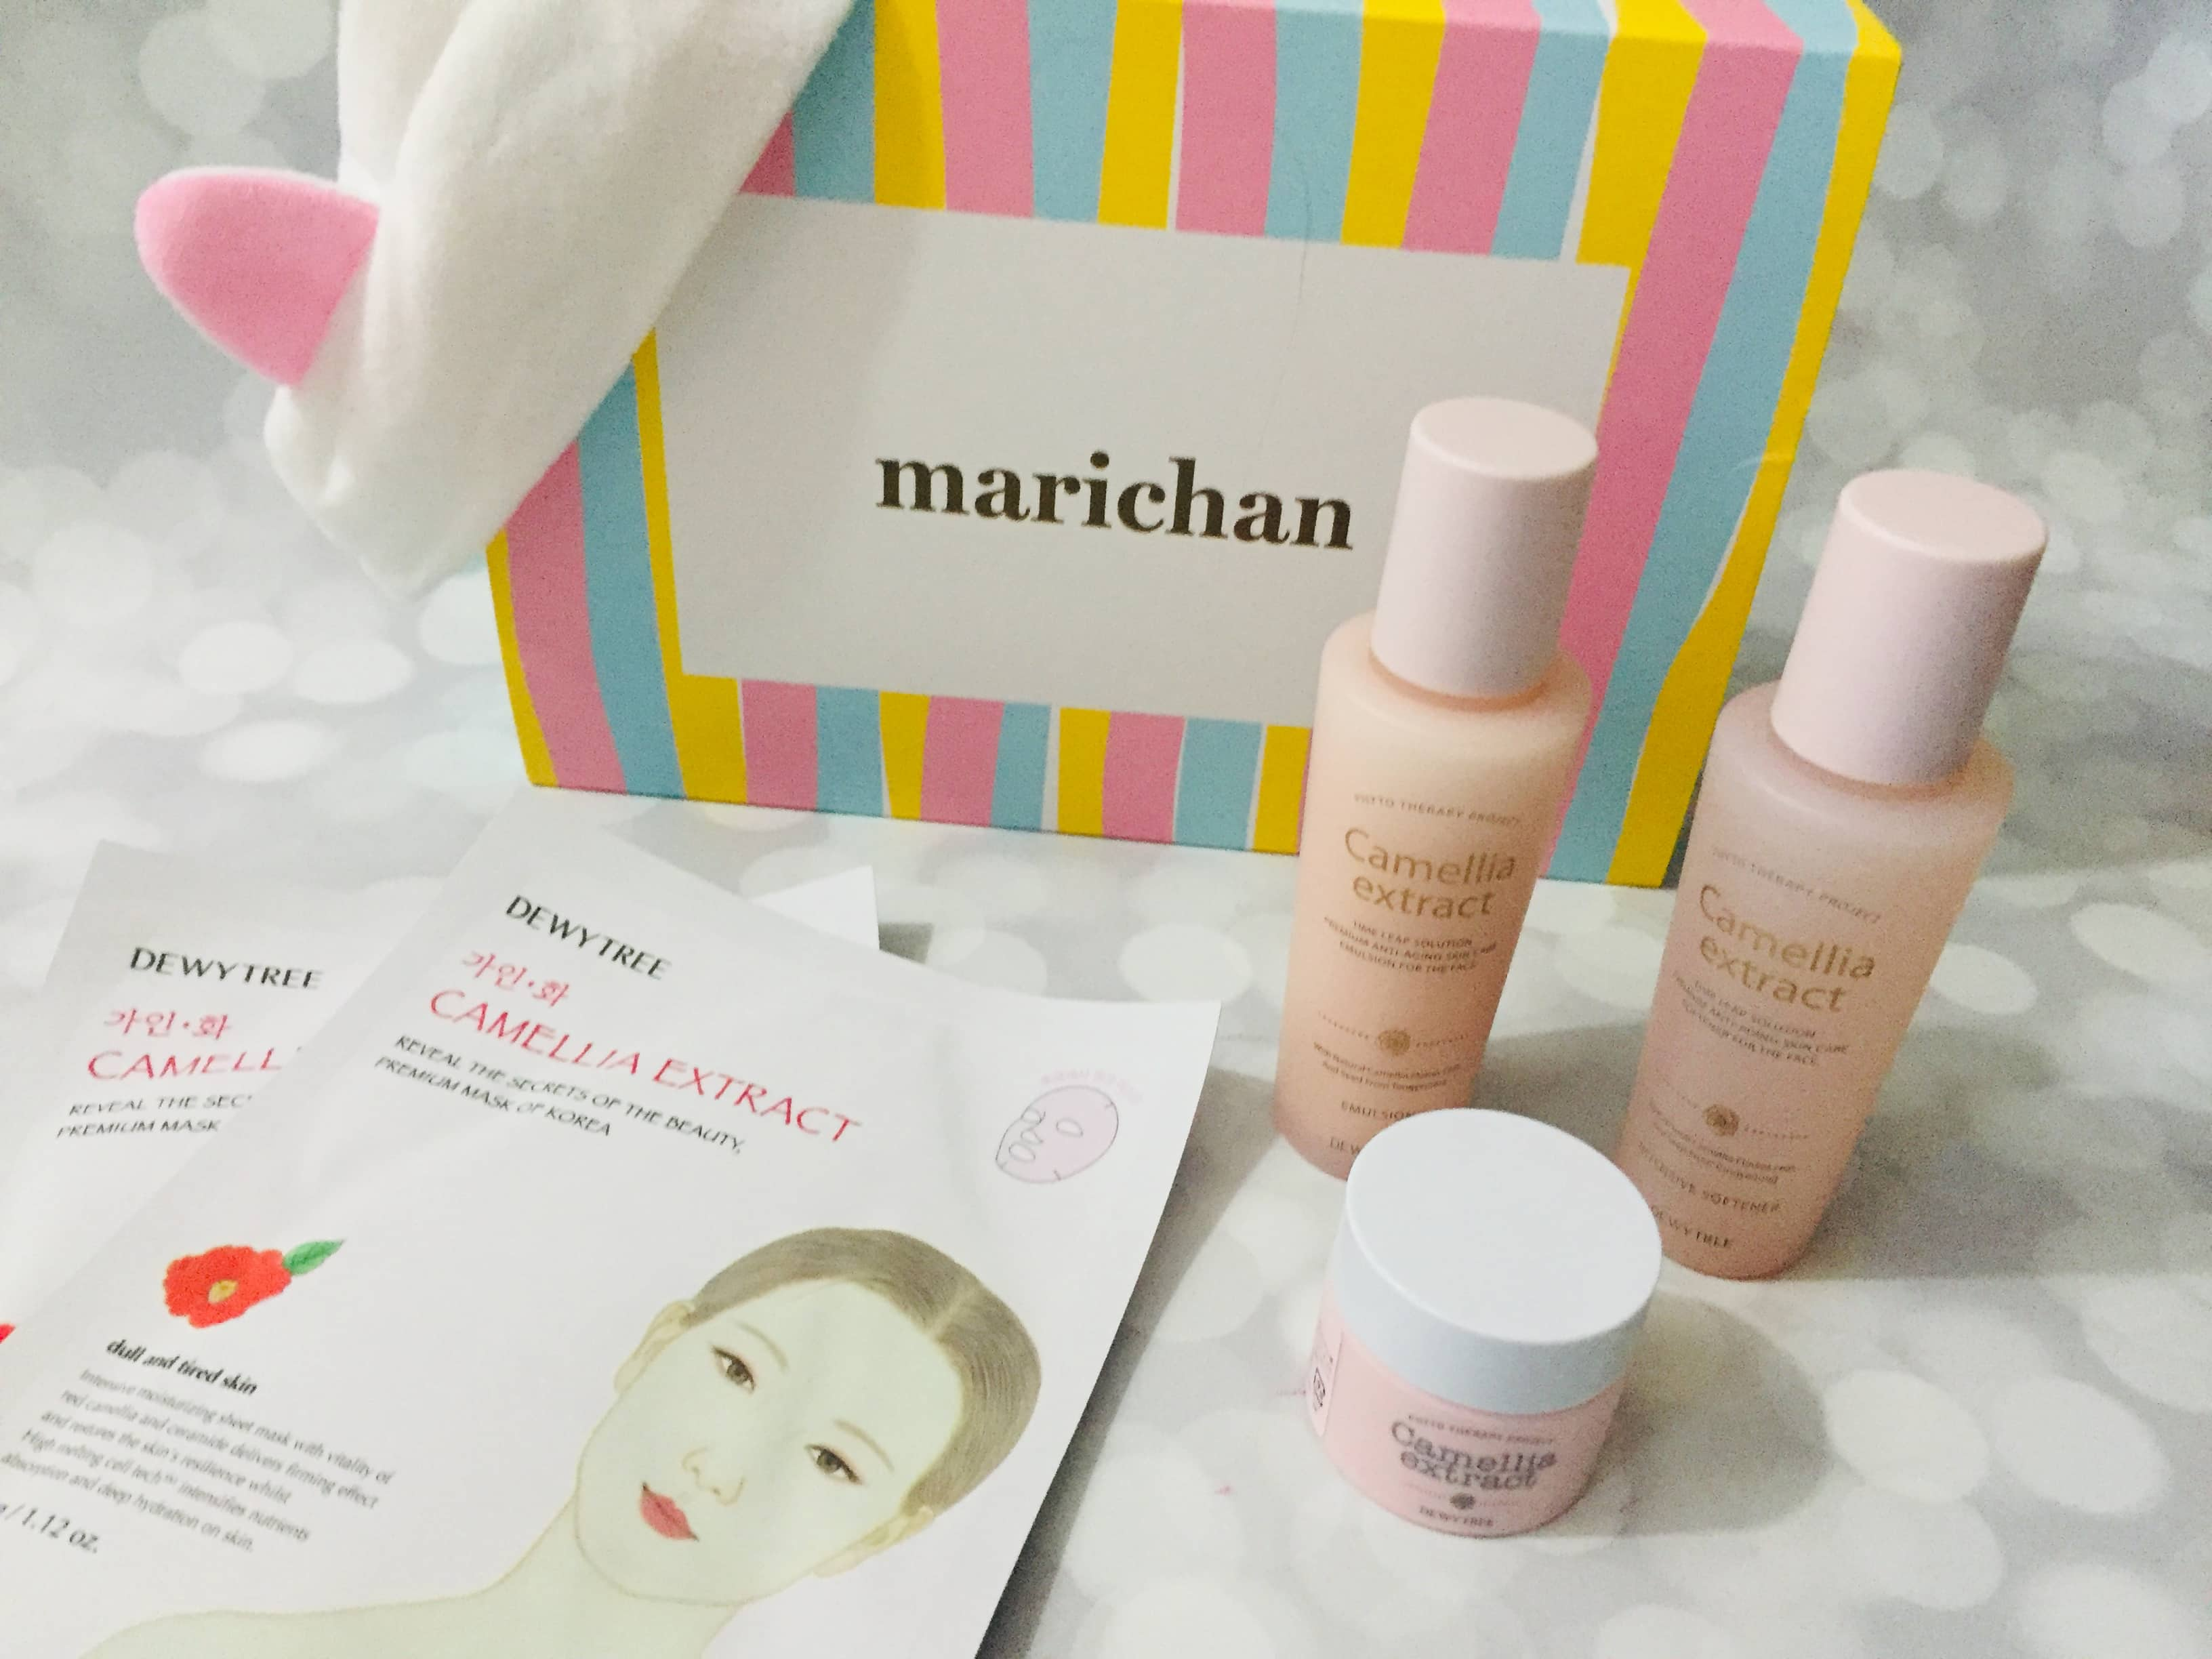 MarichanBox July 2019 Subscription Box Review + Coupon